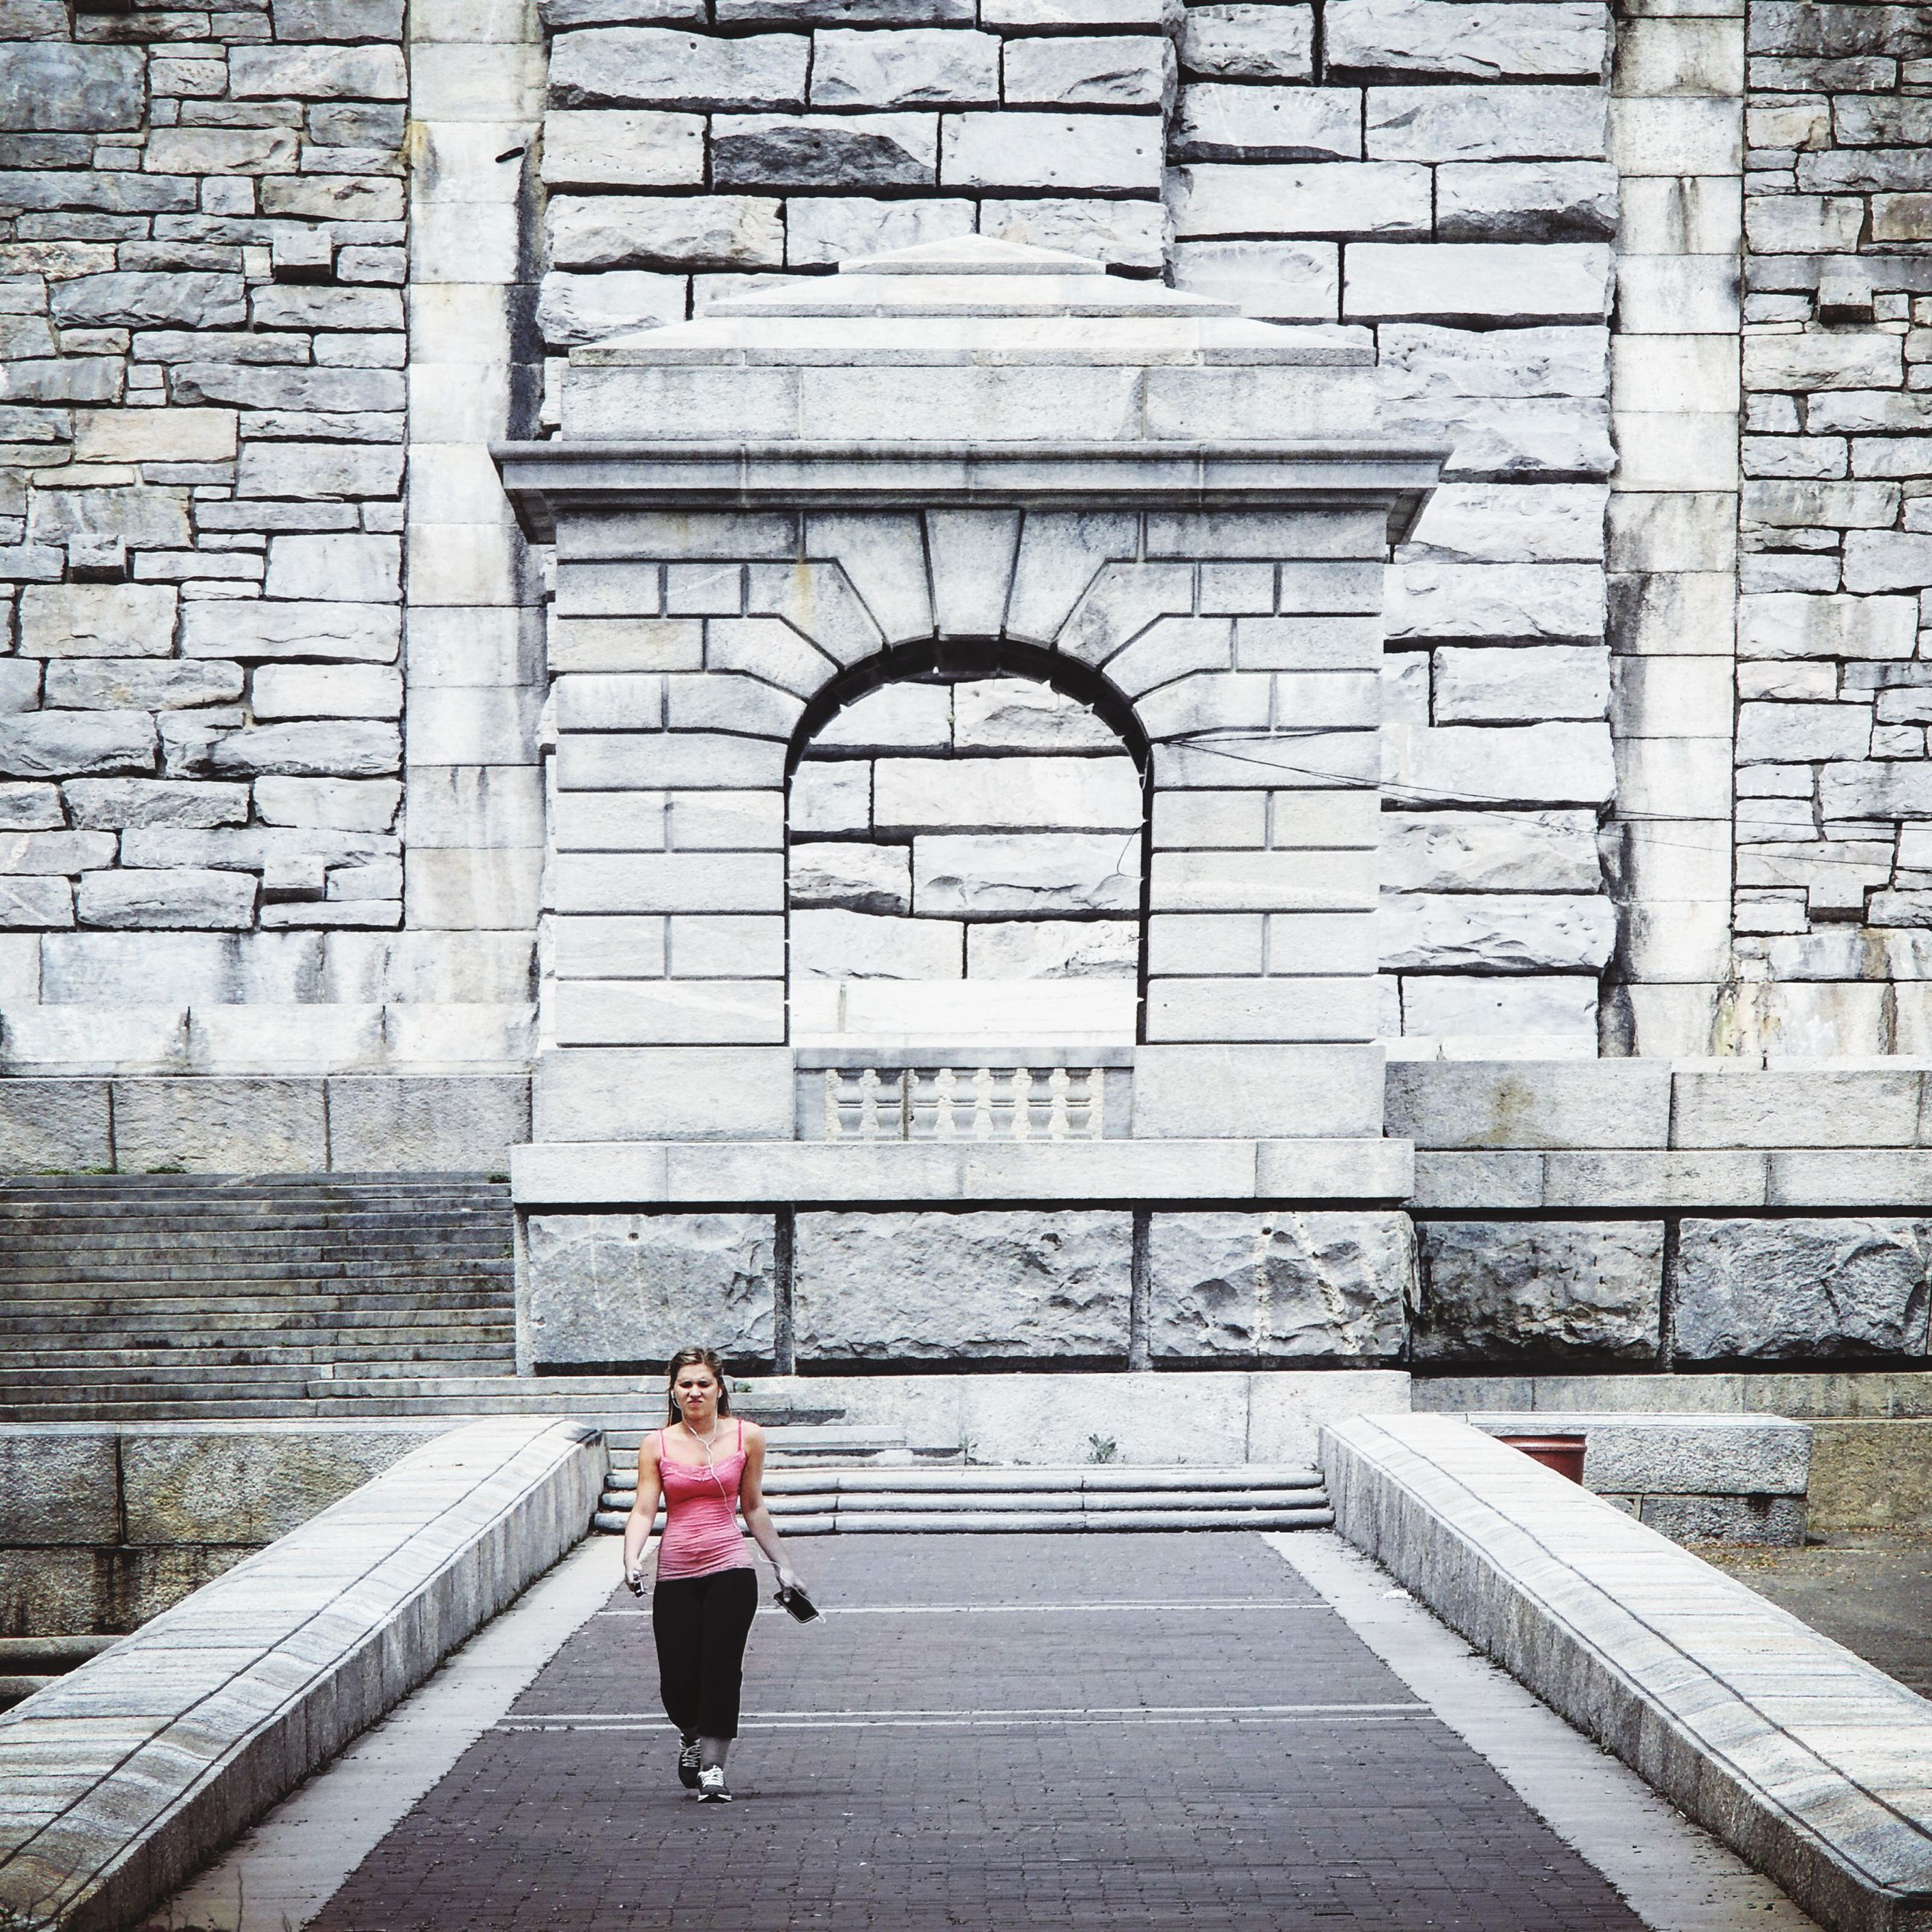 full length, walking, architecture, arch, built structure, lifestyles, casual clothing, leisure activity, steps, day, history, person, outdoors, in front of, stone material, the past, architectural feature, arched, young adult